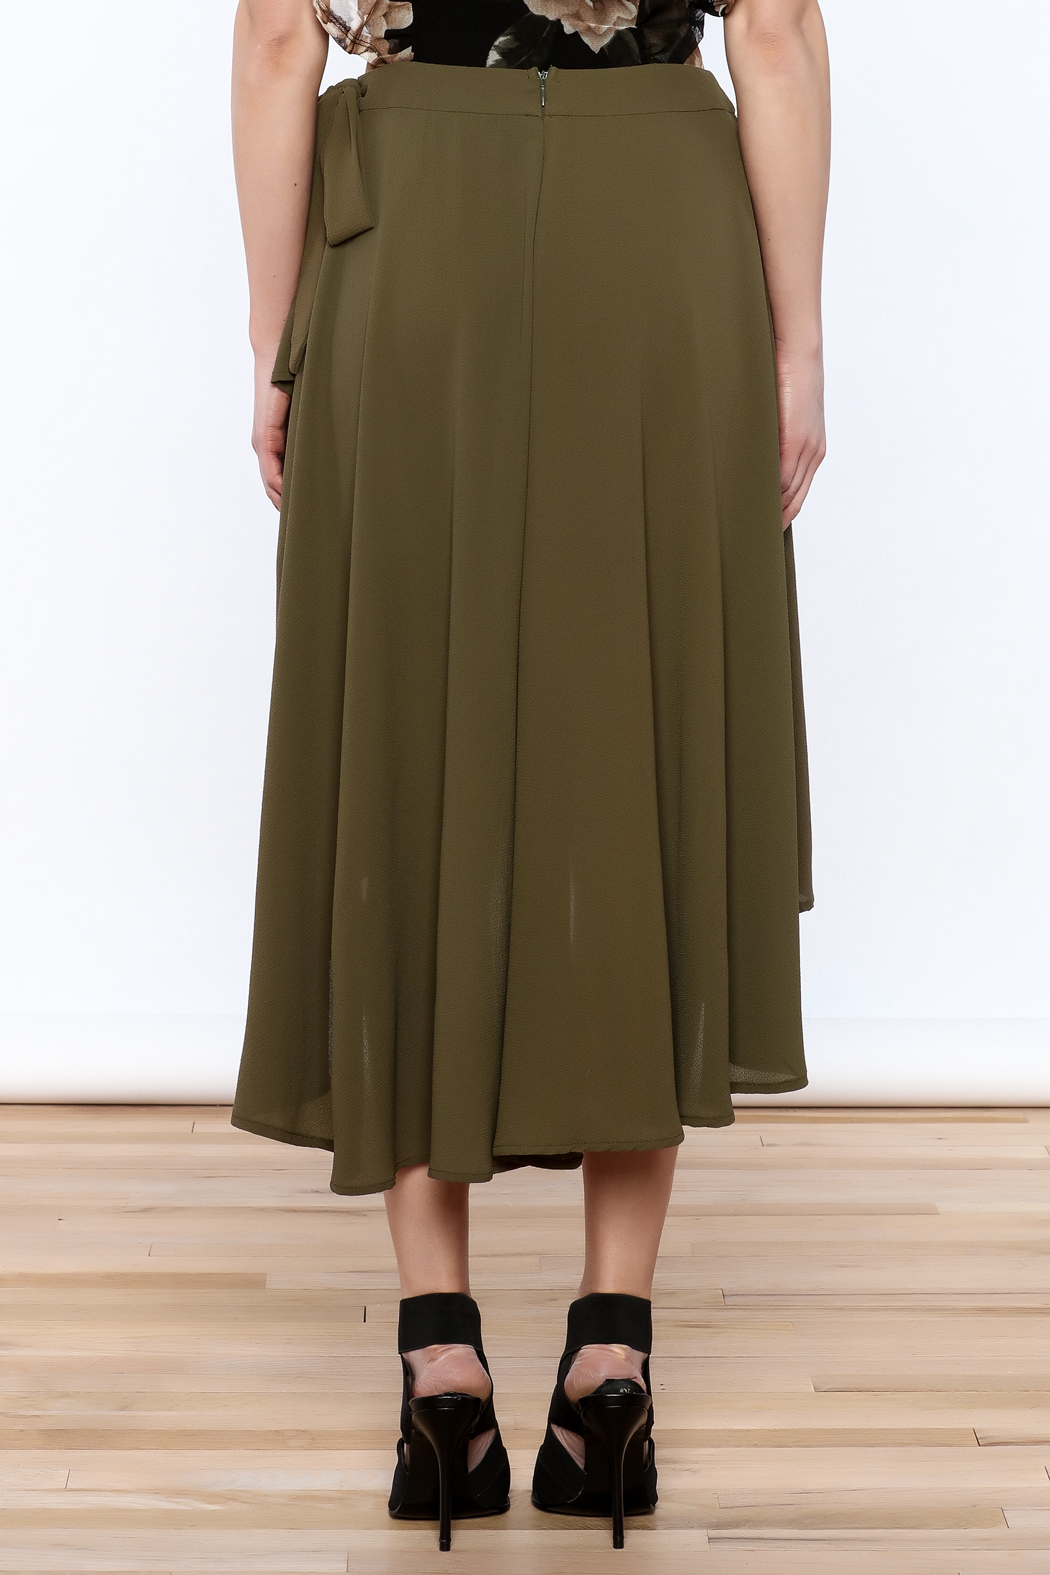 She + Sky Olive Green Midi Skirt - Back Cropped Image